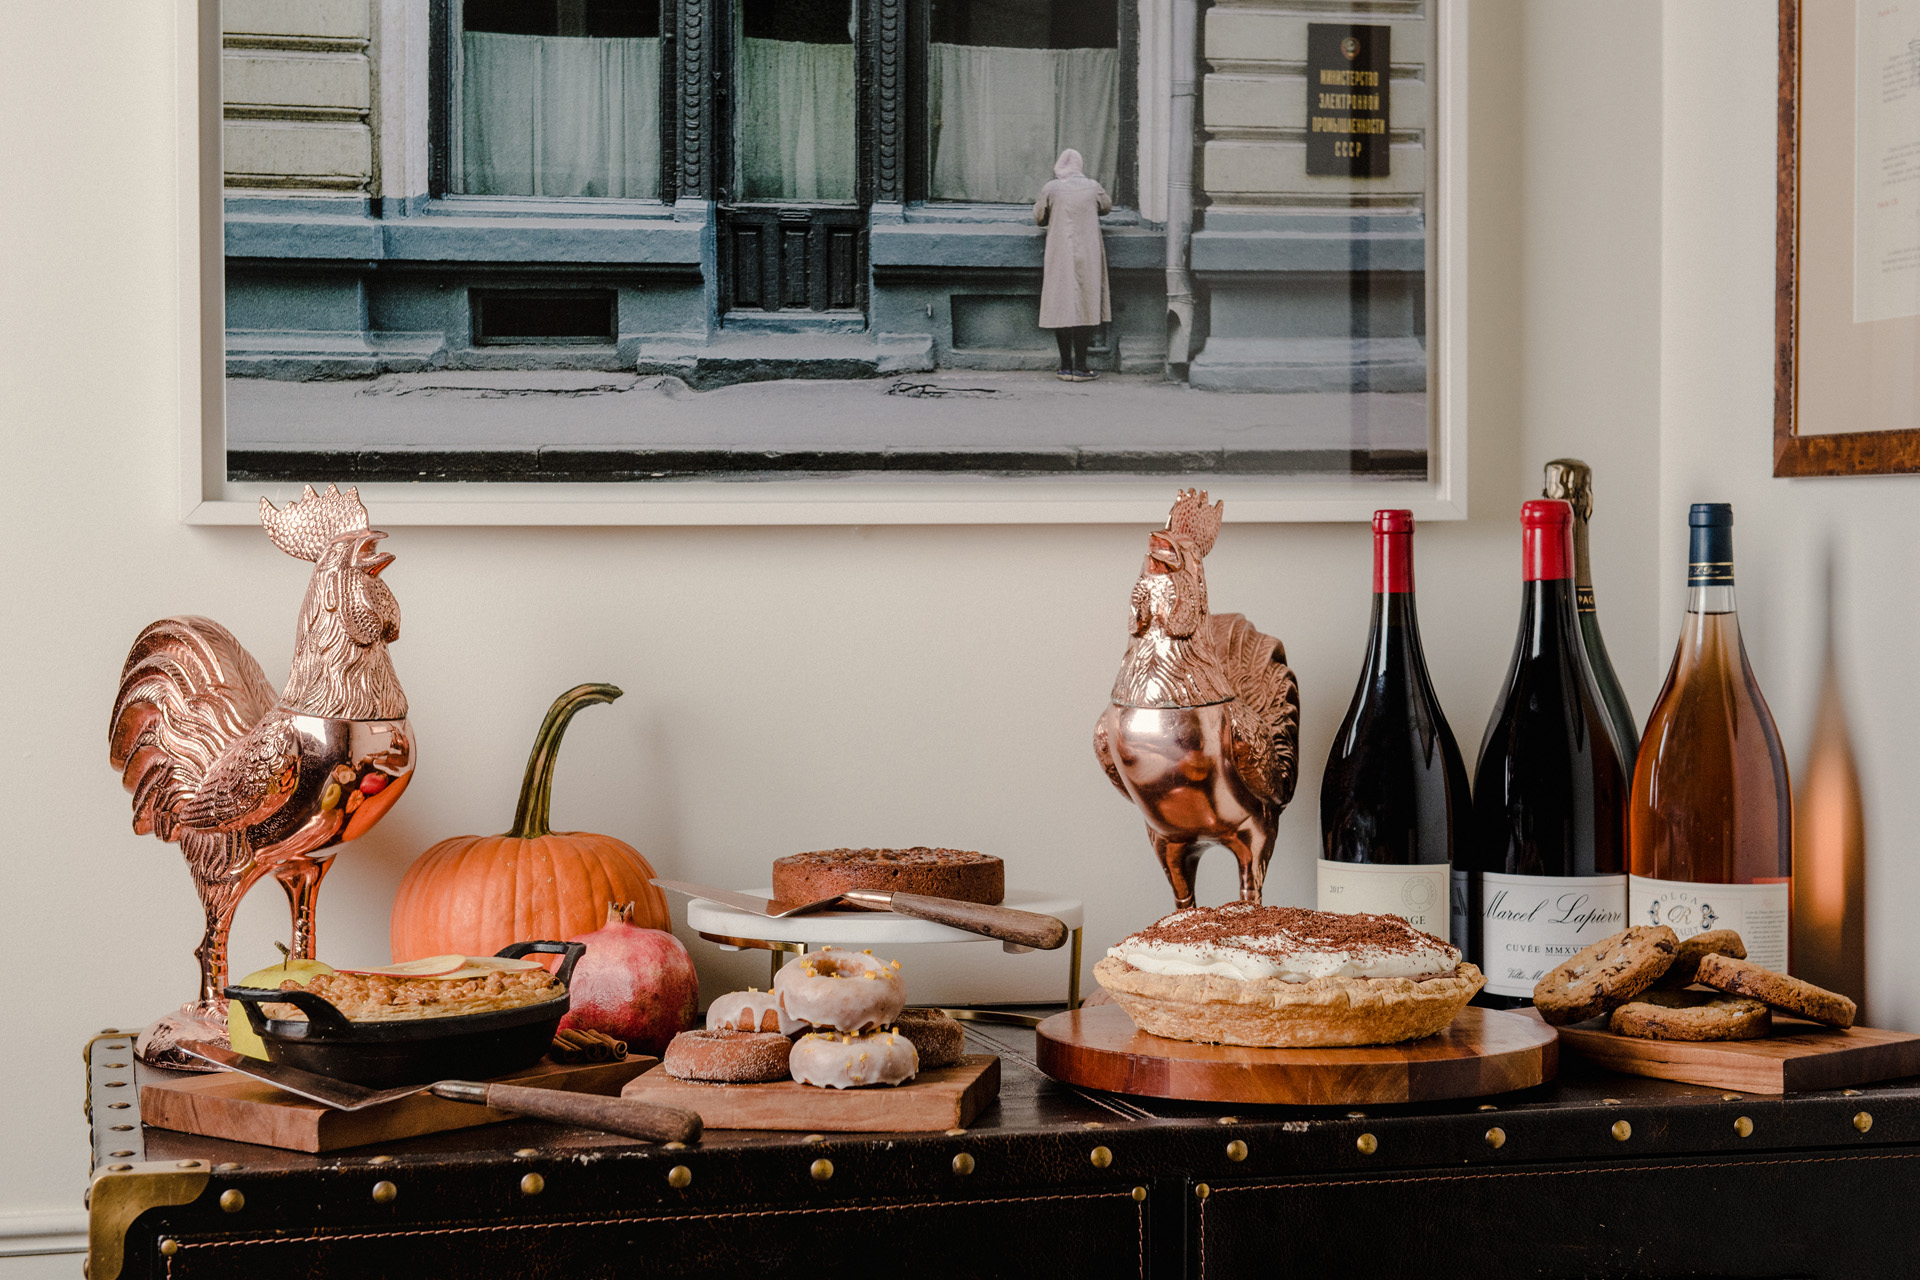 Table with desserts, wine bottles, and metal statues of roosters